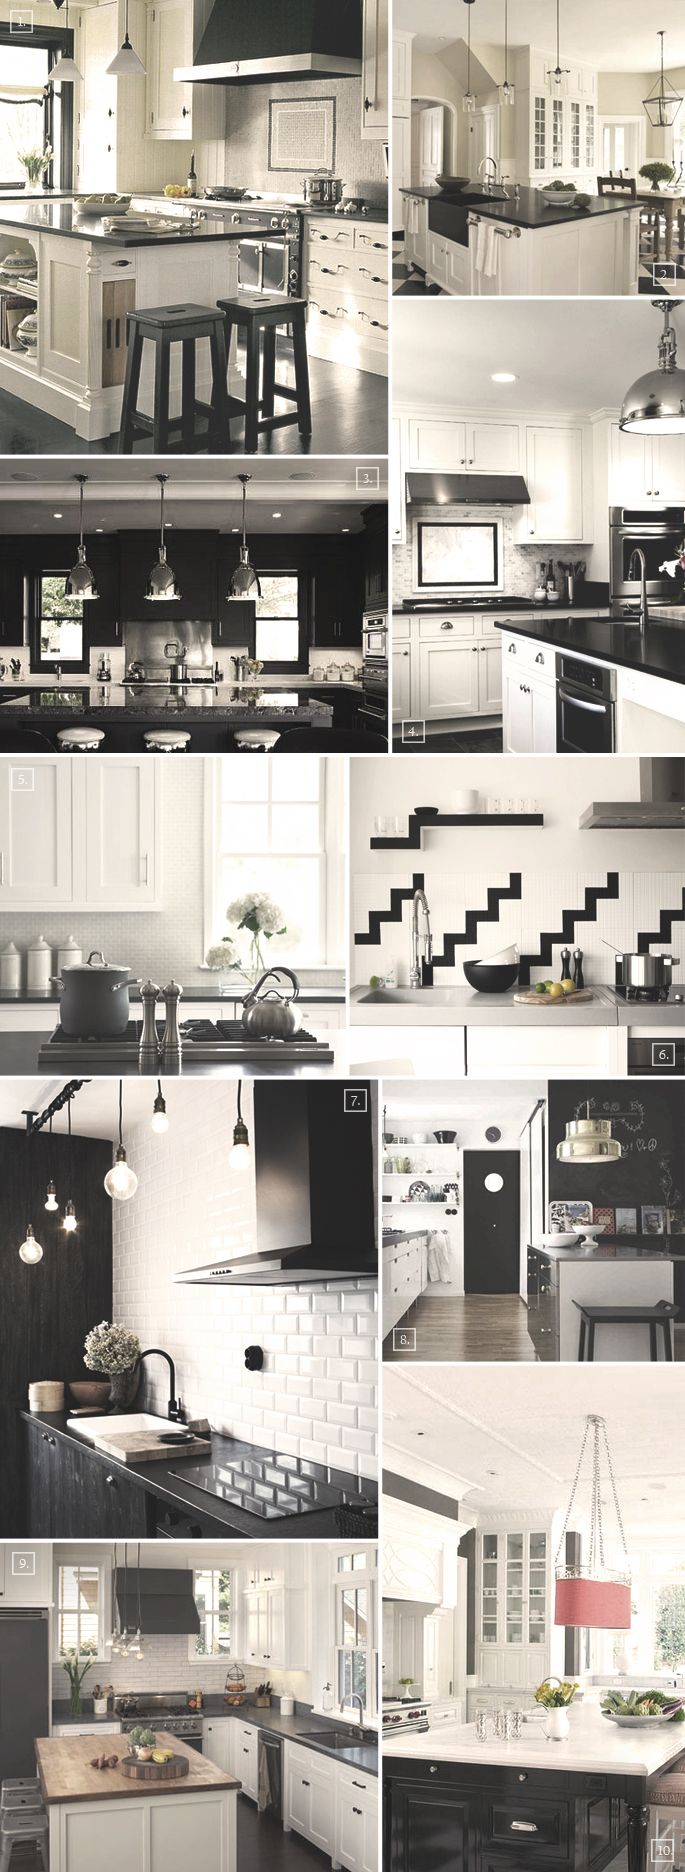 Black and White Kitchen Ideas and Designs Mood Board | Kitchen ...